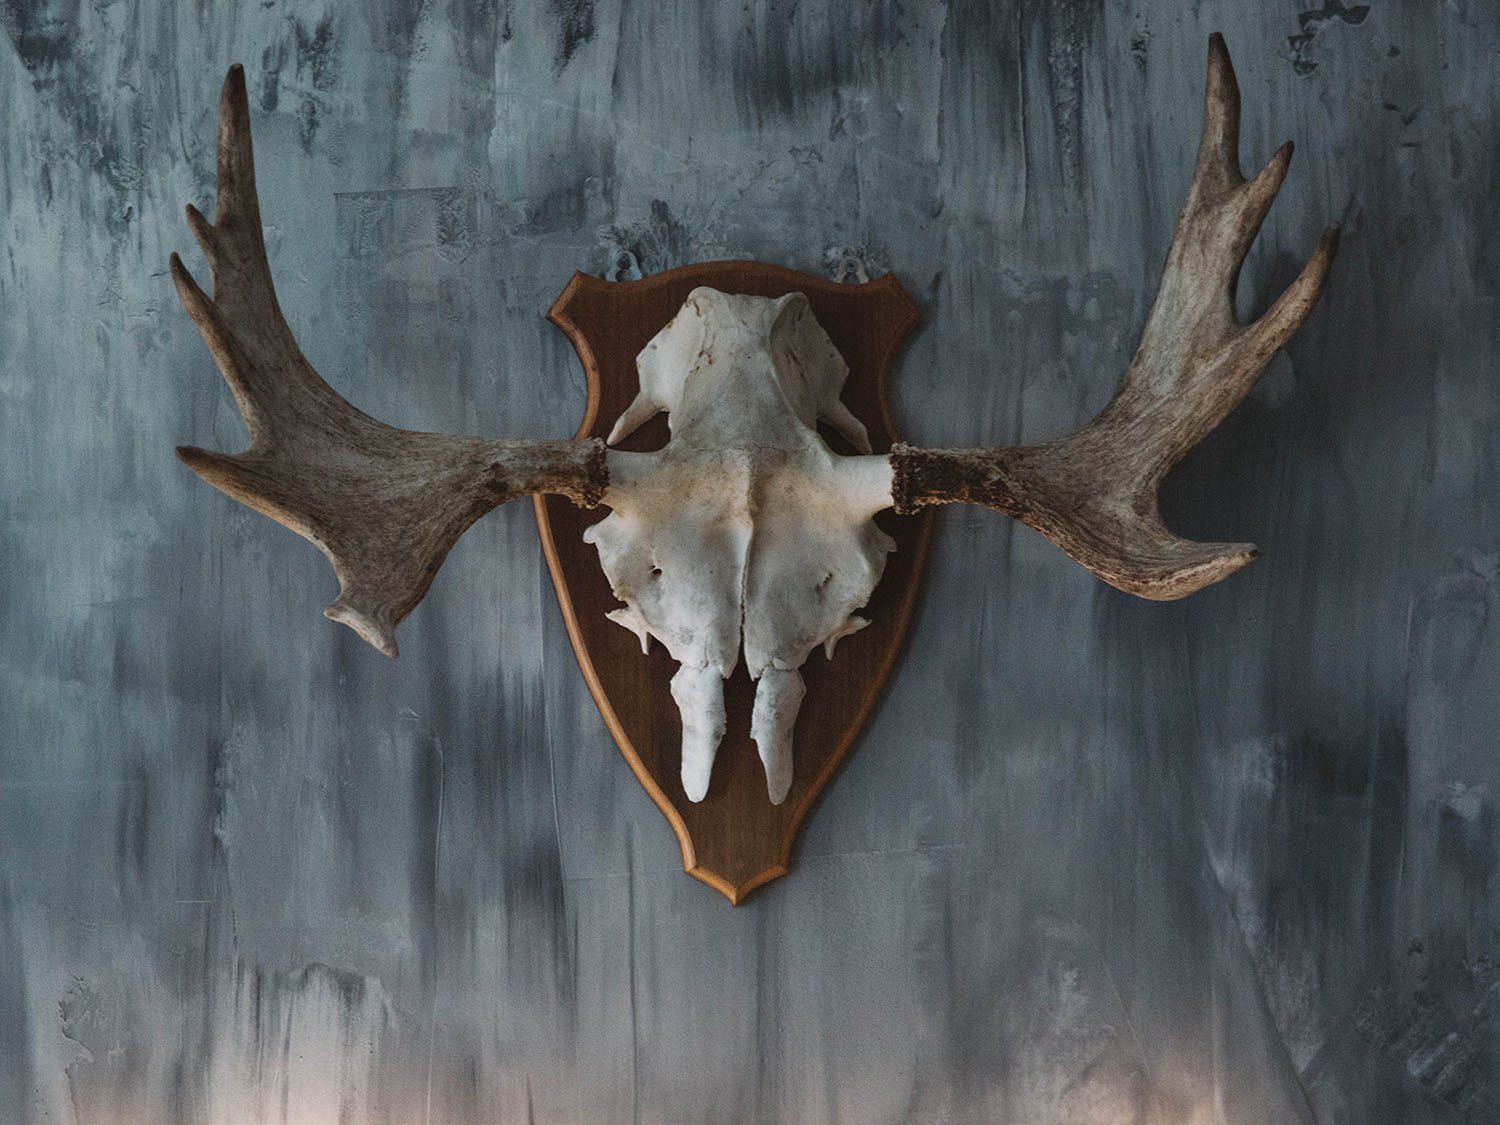 Mounted moose skull on fake concrete wall